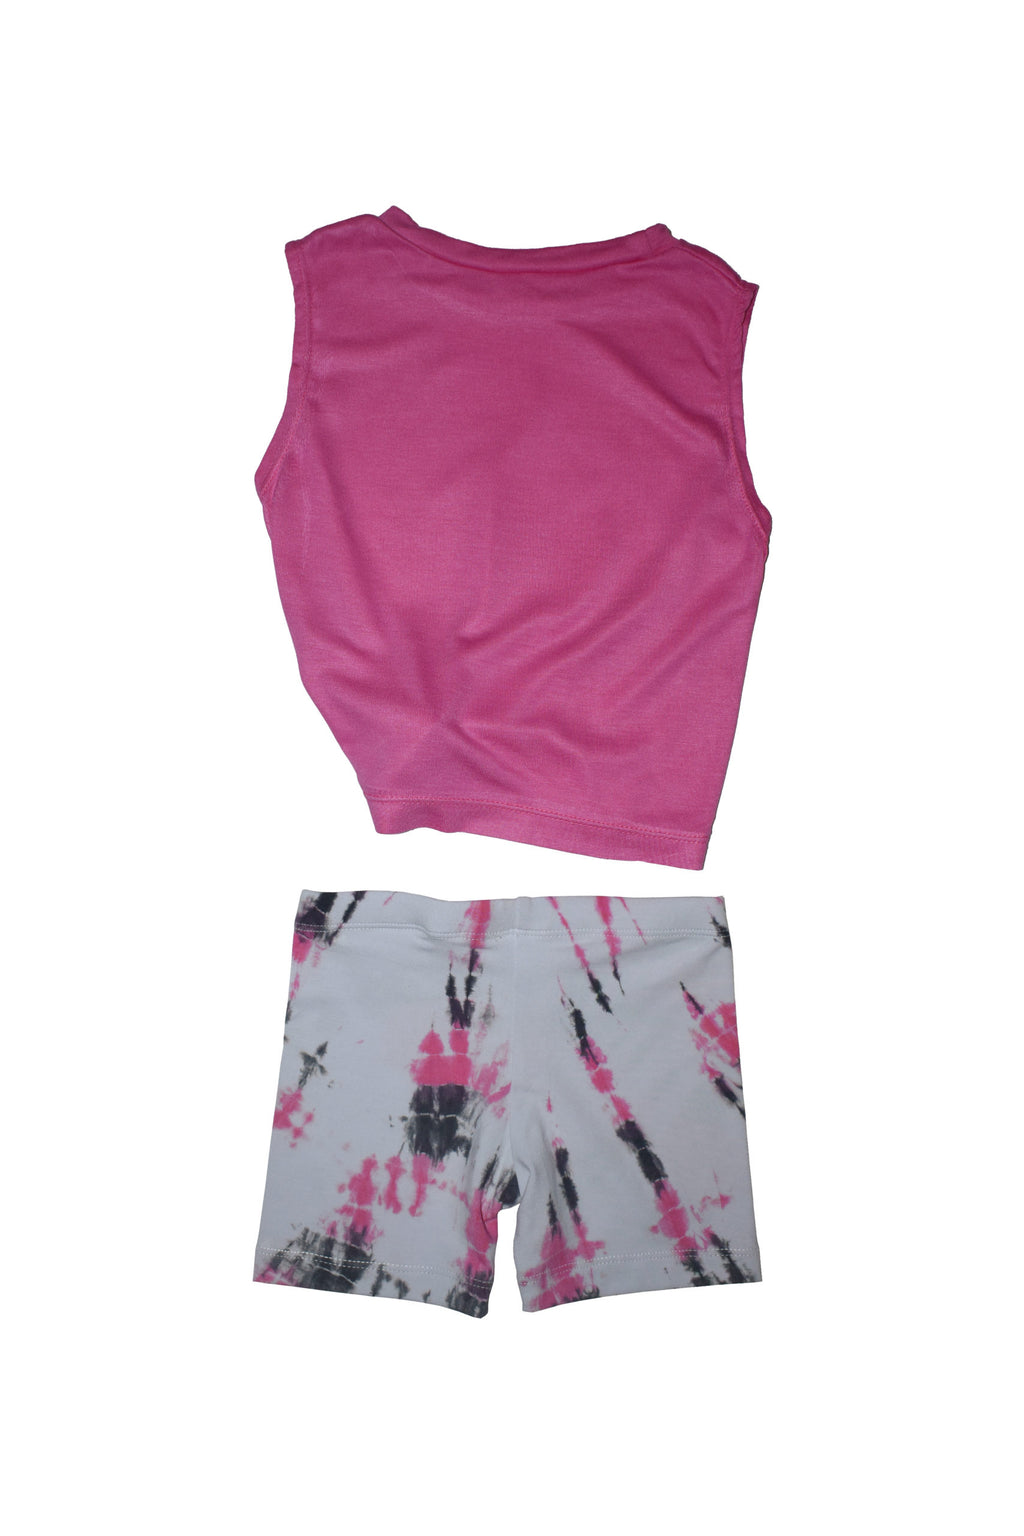 Pink High Love Vibes Baby Short Set